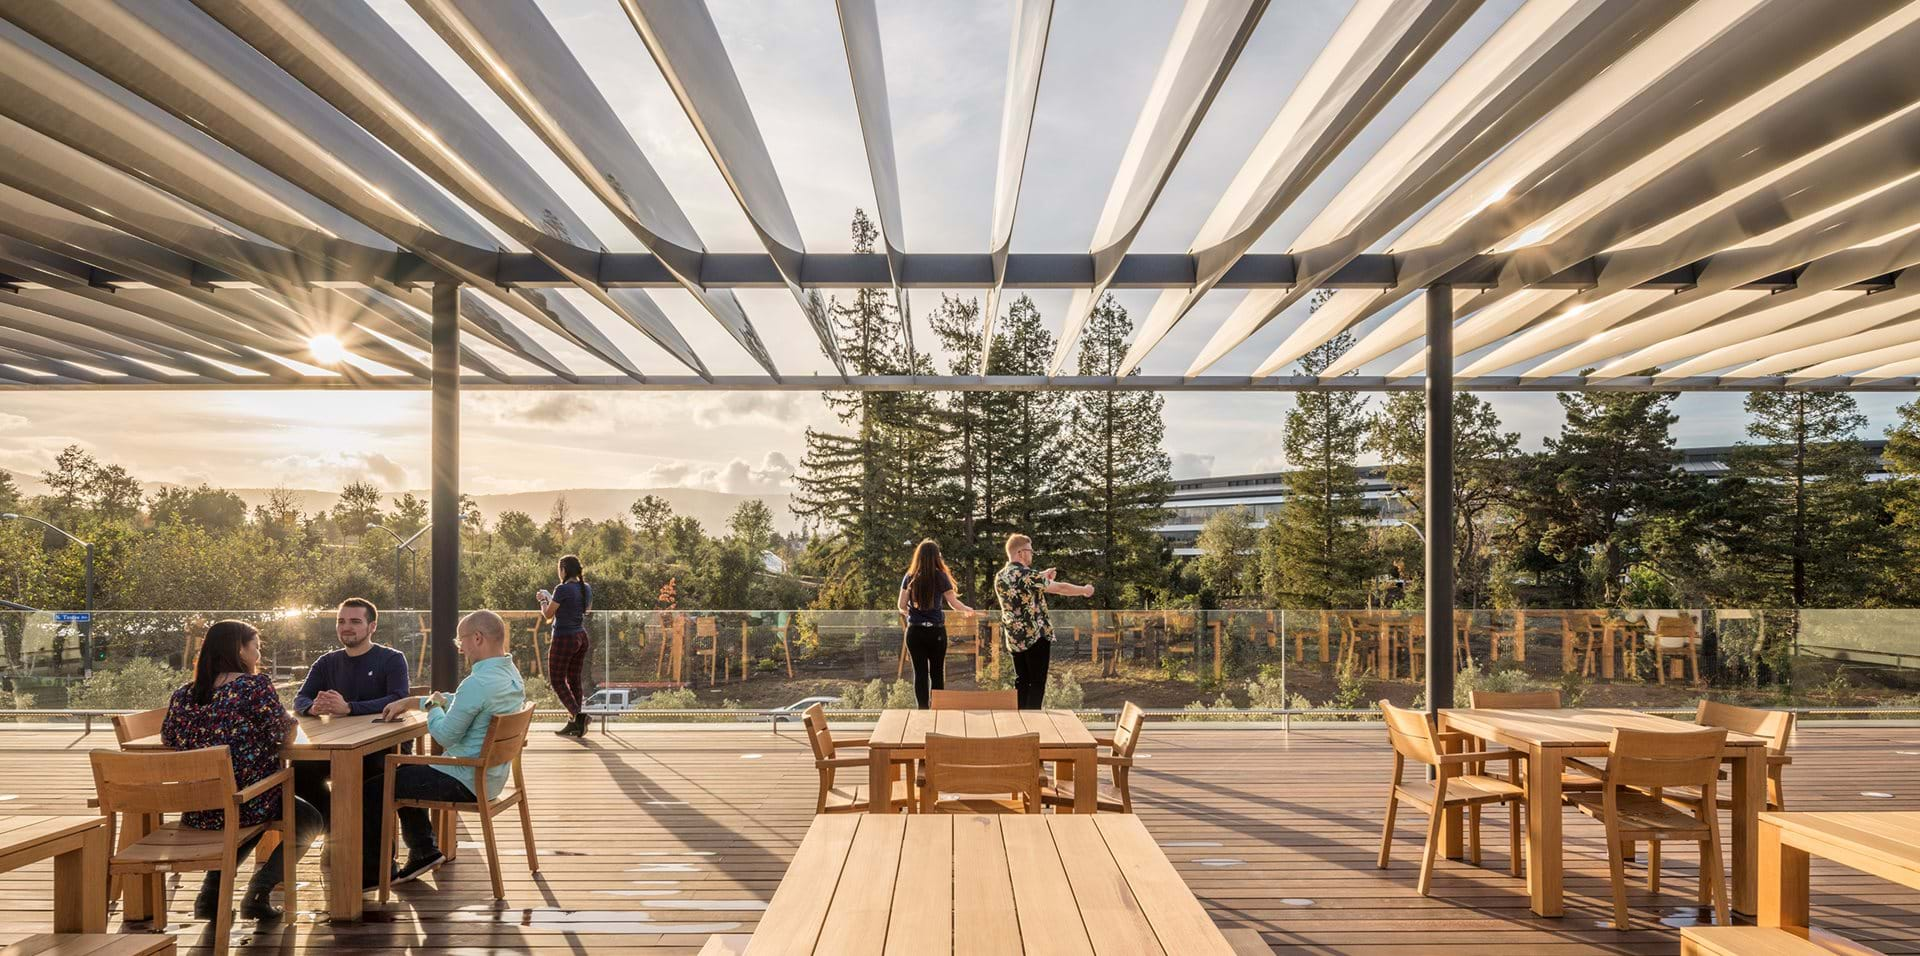 Apple Park Visitor Center Culture Foster Partners